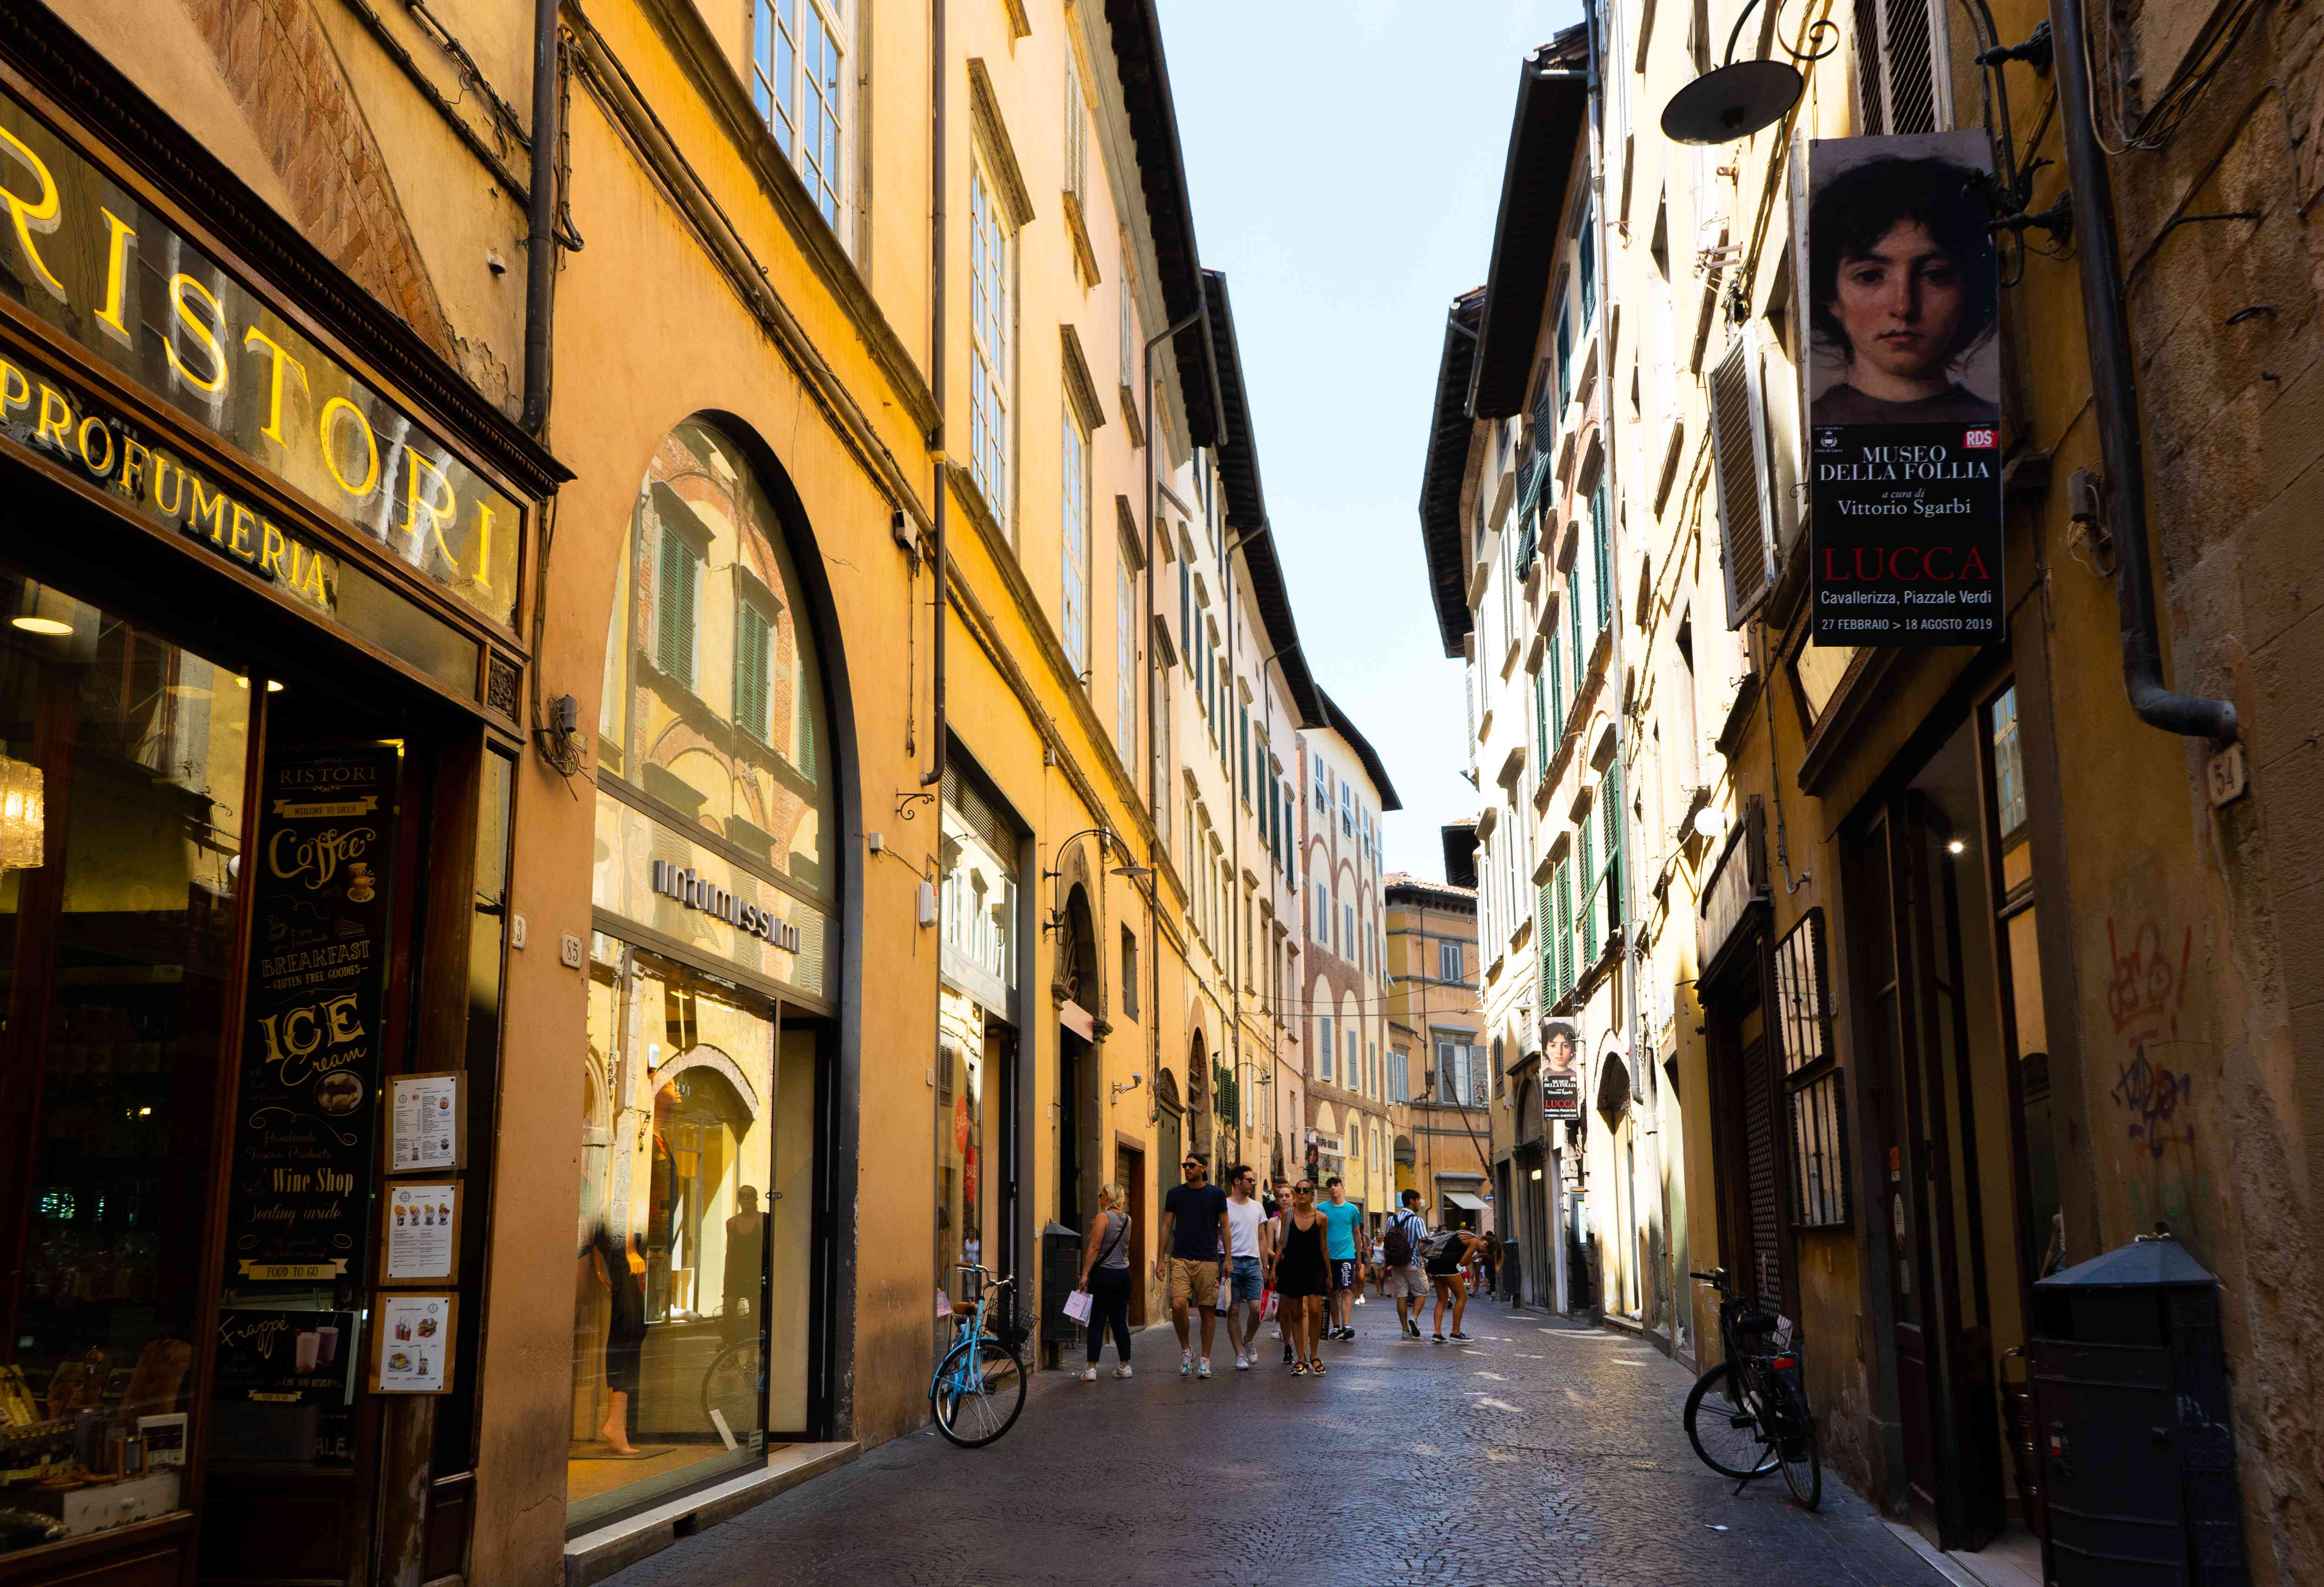 Shopping along Via Filungo and Torre delle Ore